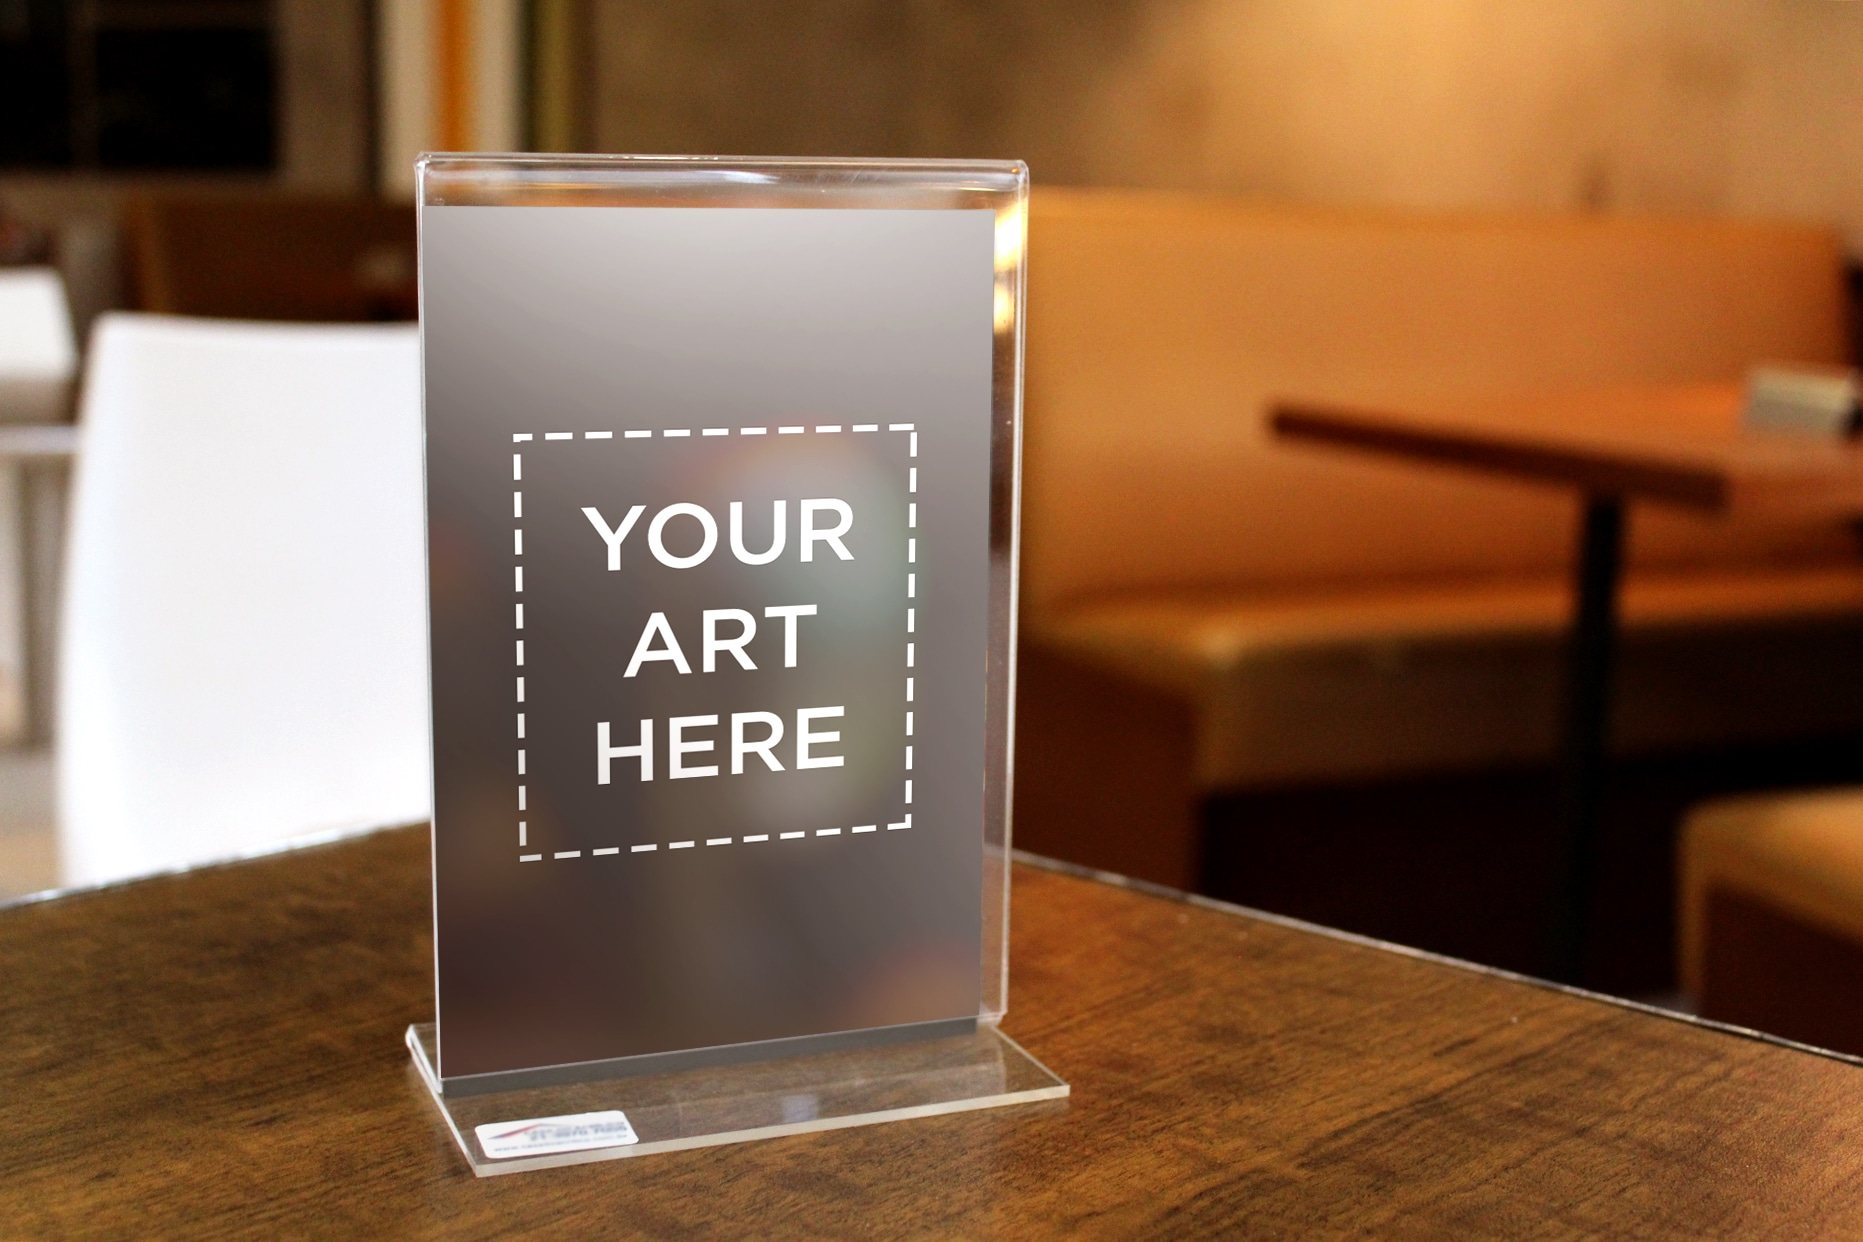 download this free acrylic table standee in psd